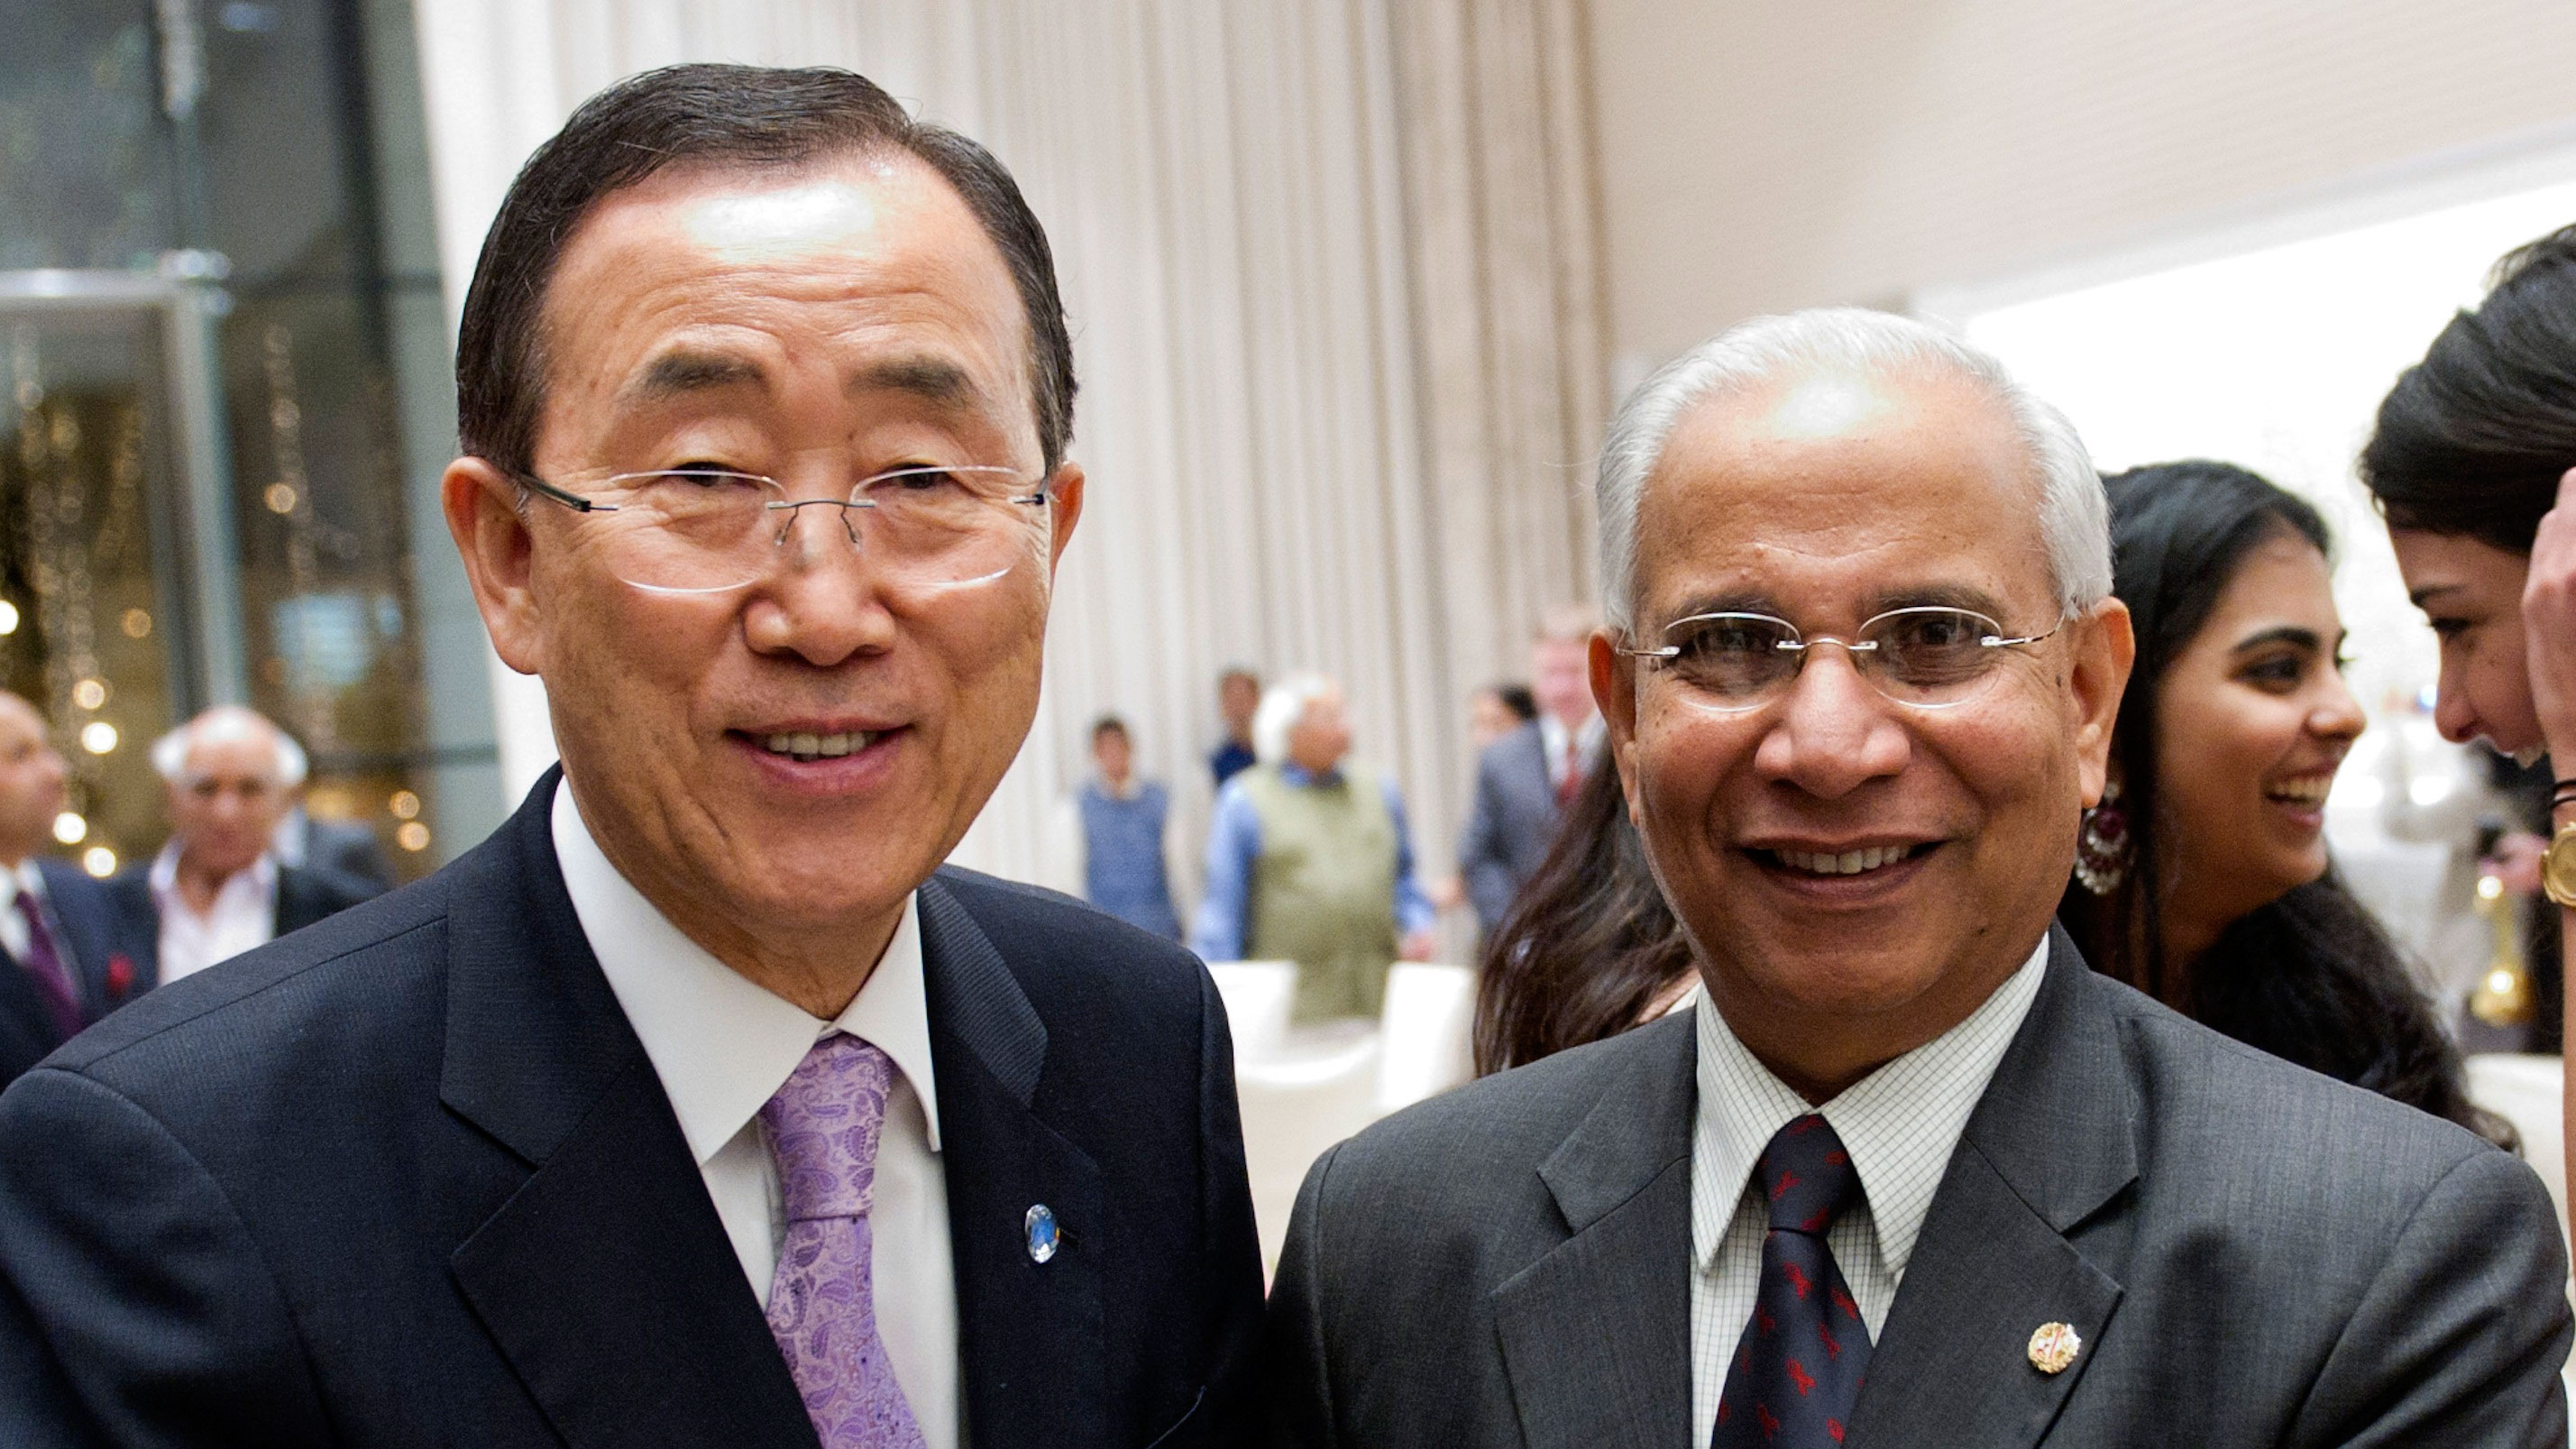 UN Secretary General's Special Envoy for AIDS in Asia and the Pacific